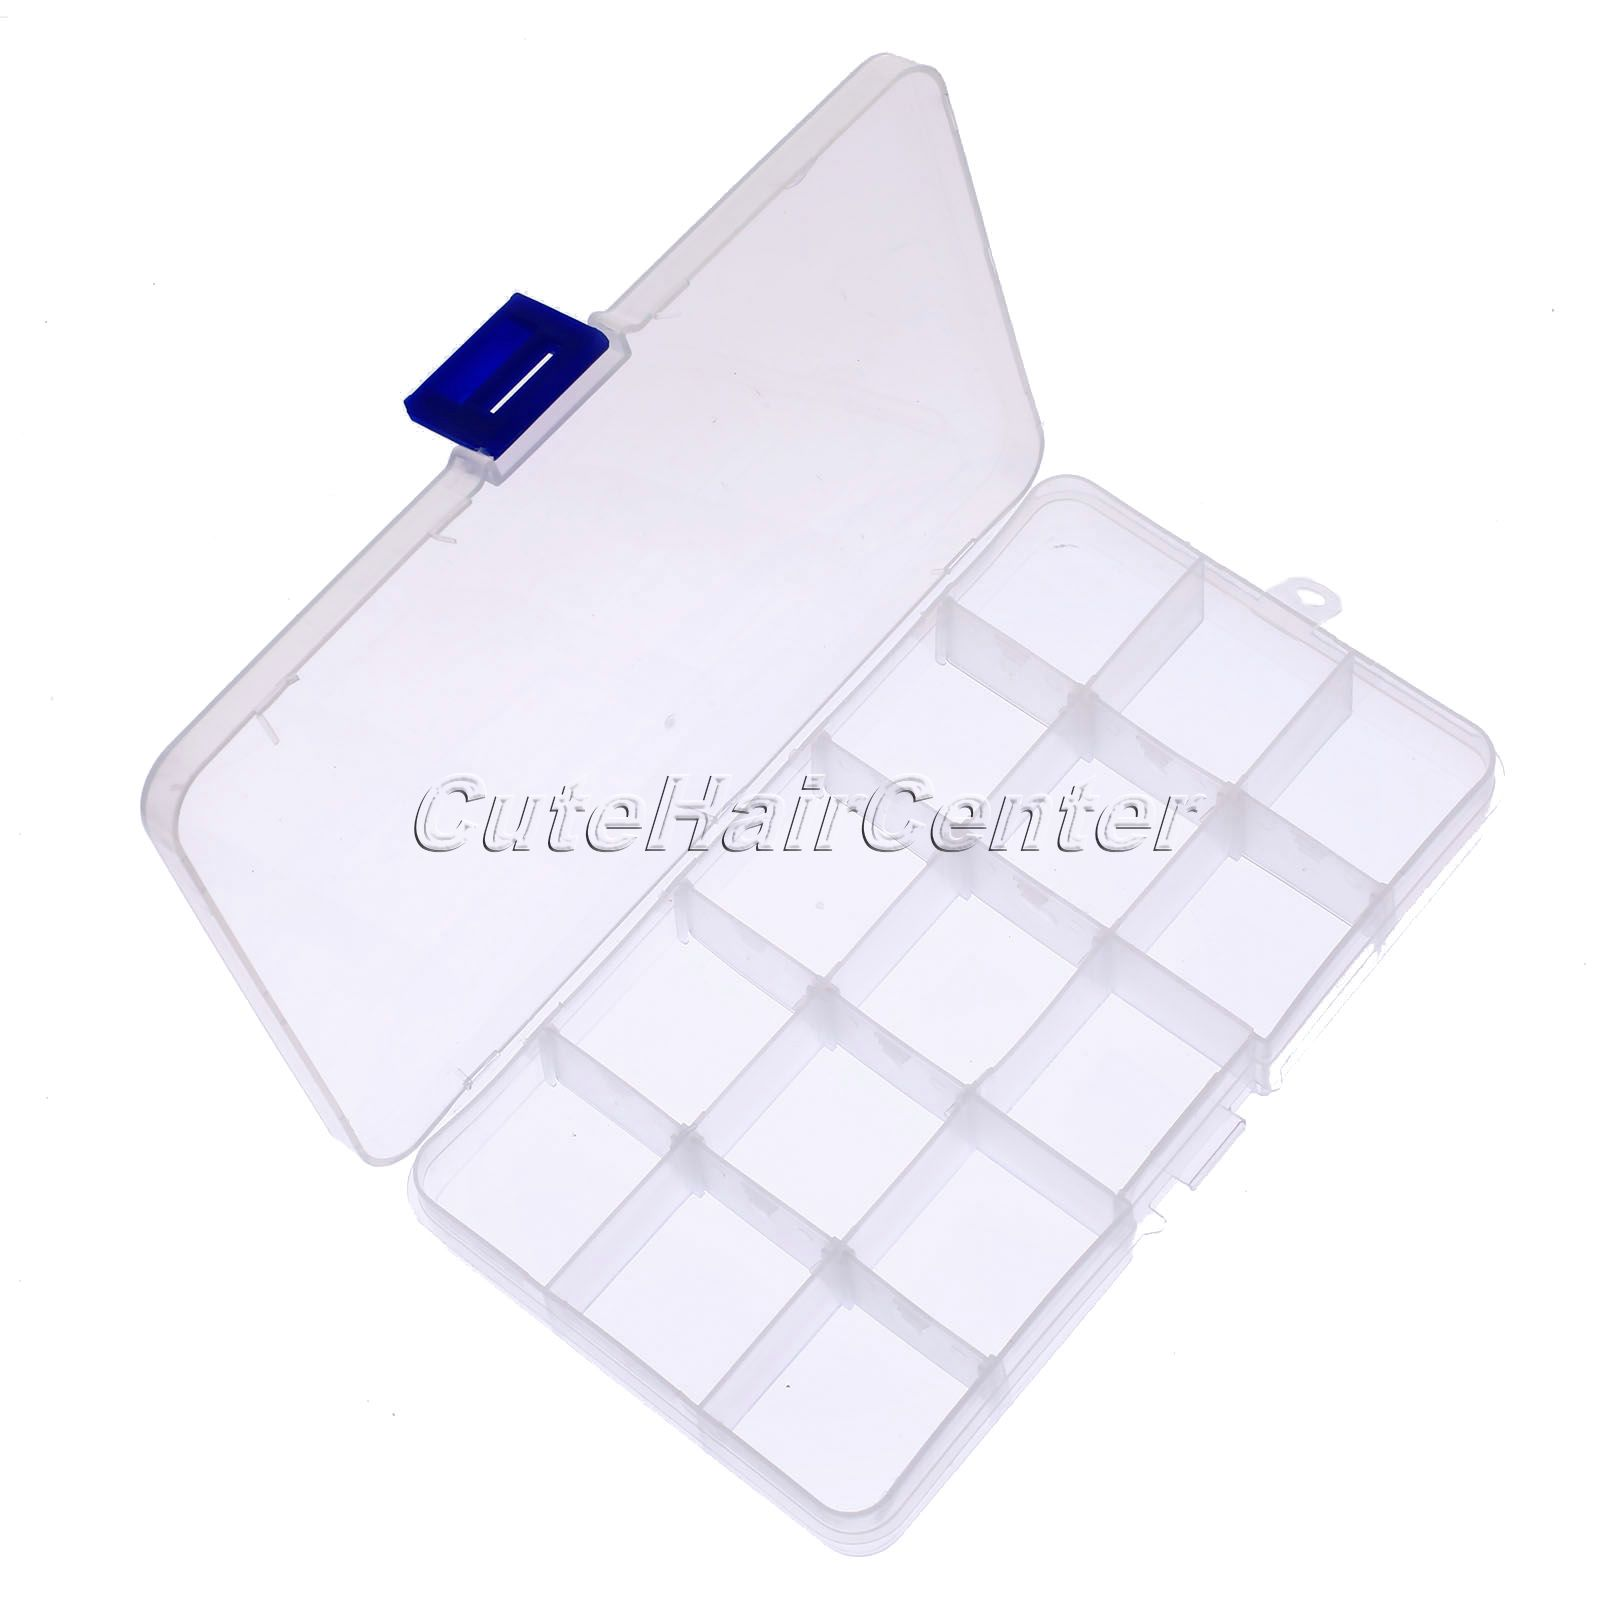 Cross-stitch Responsible Available Factory Wholesale 1 Lot=10 Sets Embroidery Cross Stitch Box Tool Plastic Detachable 24 Grids Fast Shipping Needles